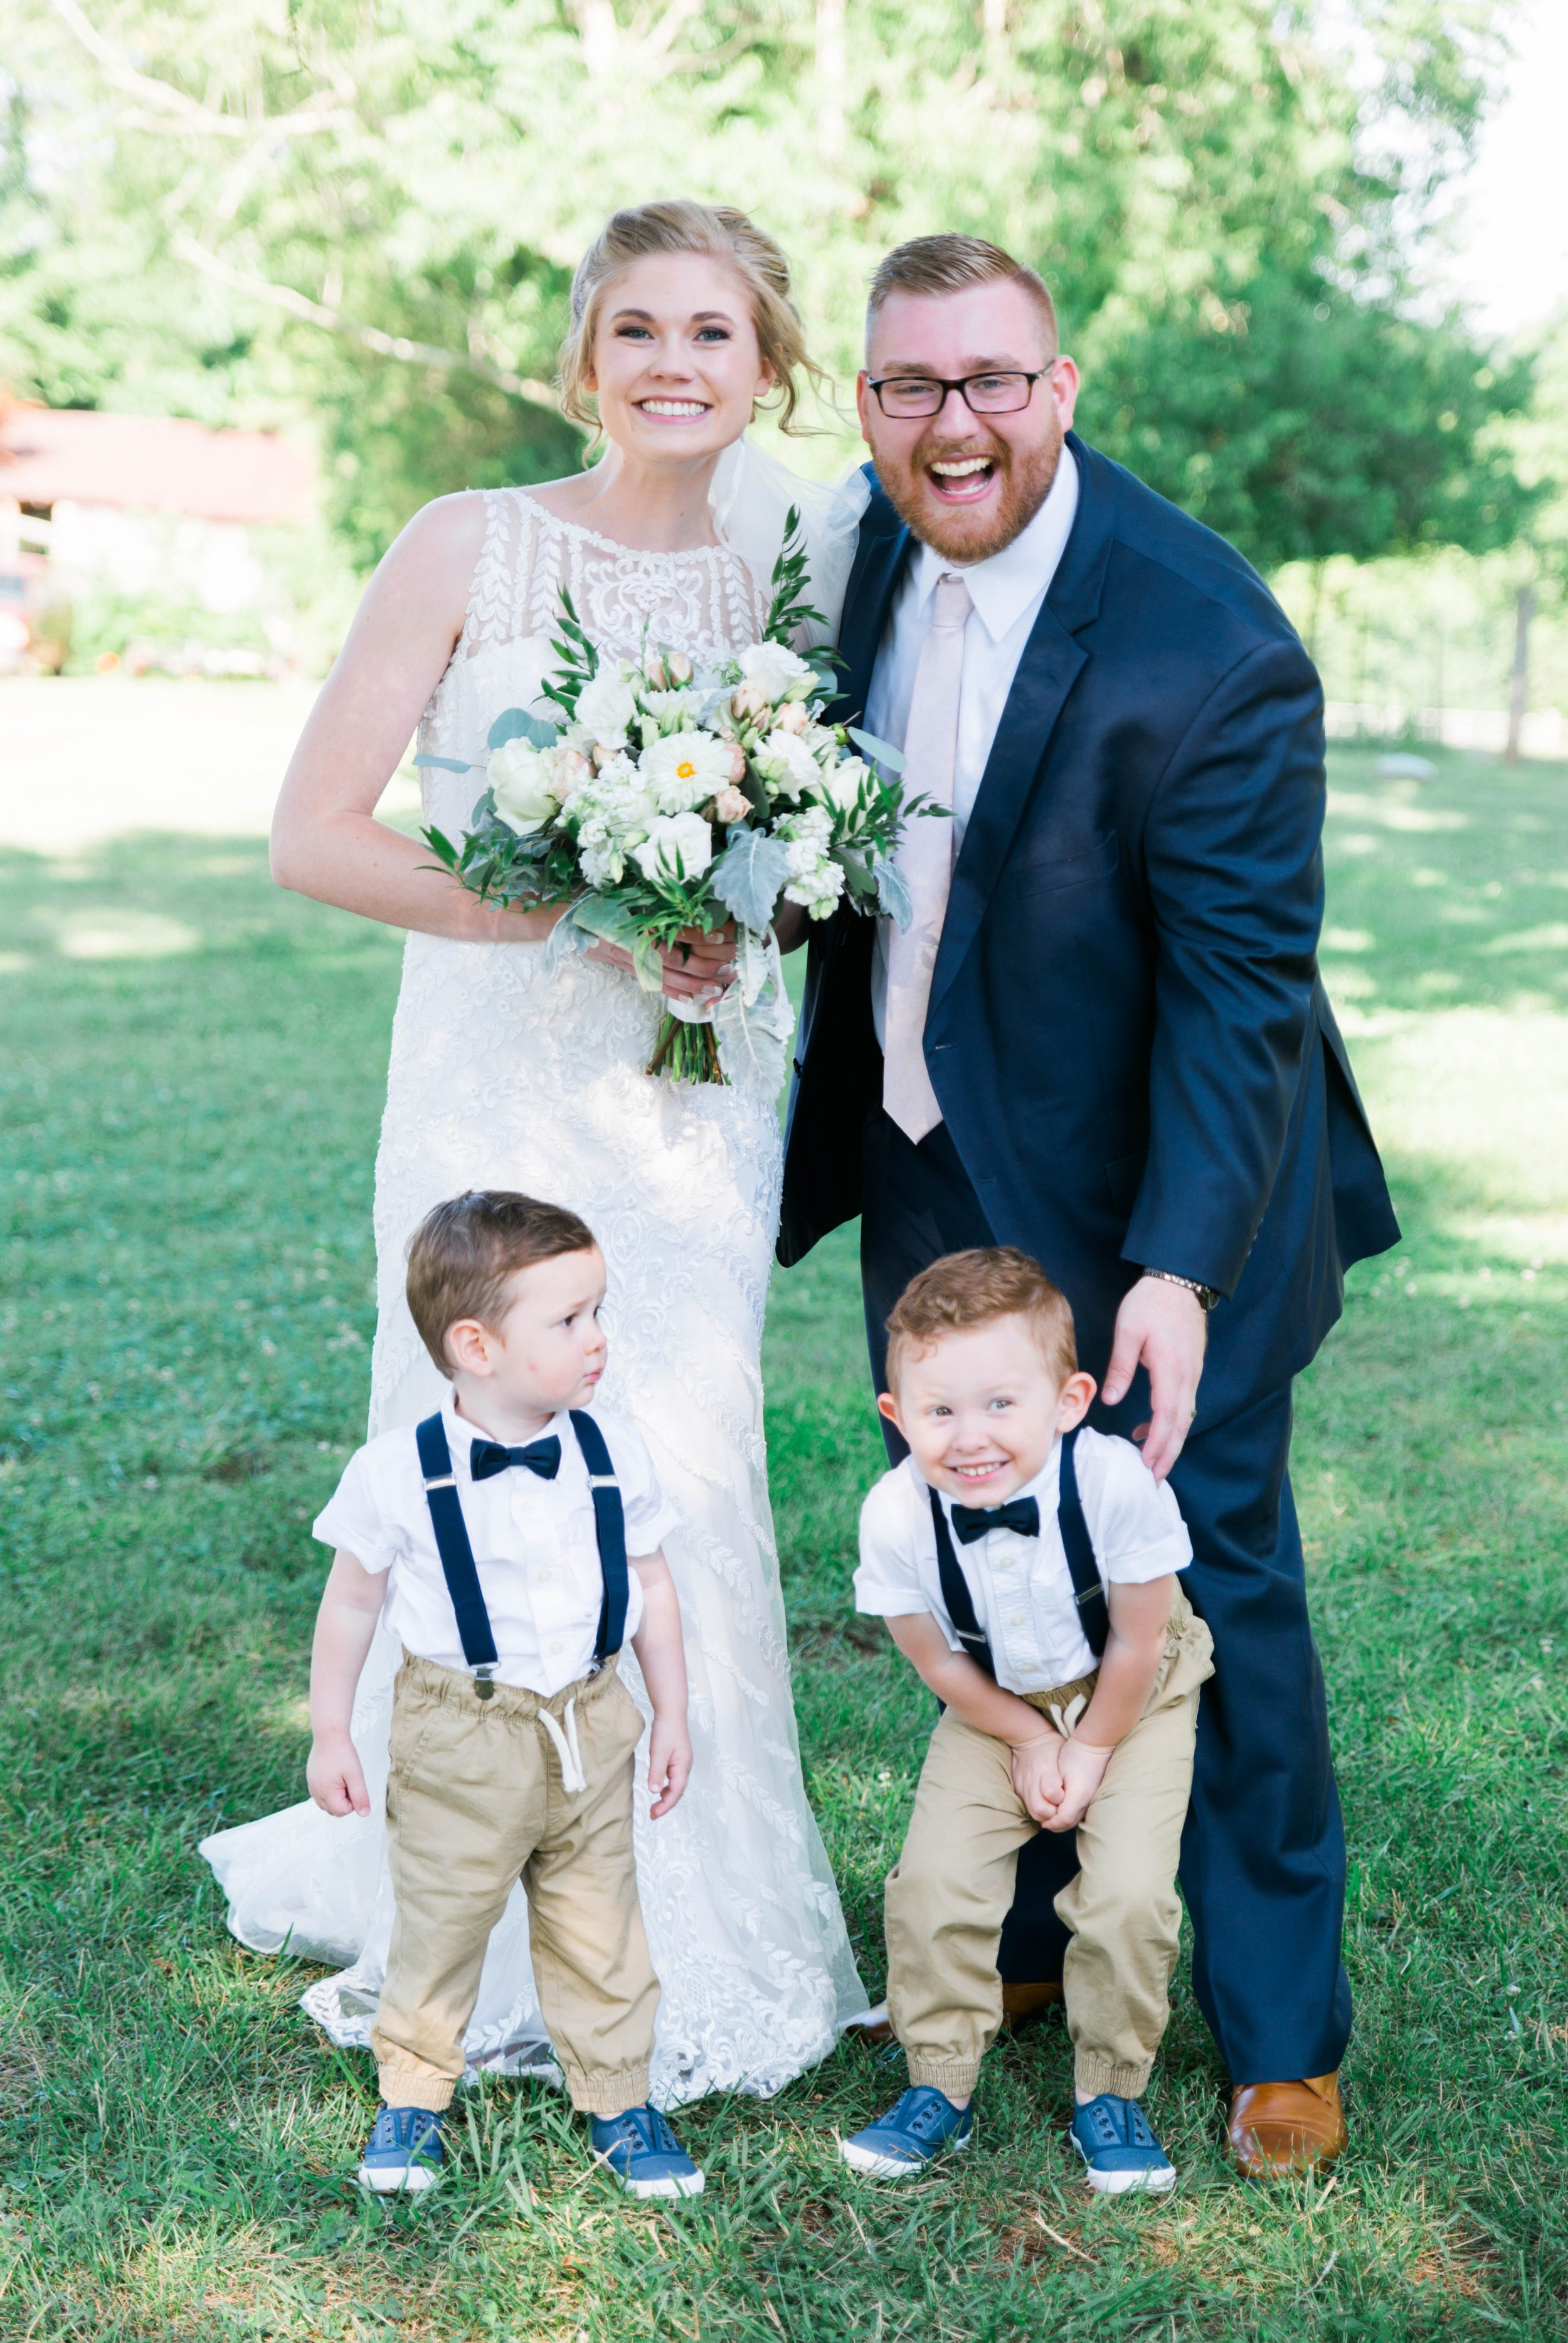 SorellaFarms_VirginiaWeddingPhotographer_BarnWedding_Lynchburgweddingphotographer_DanielleTyler 4.jpg